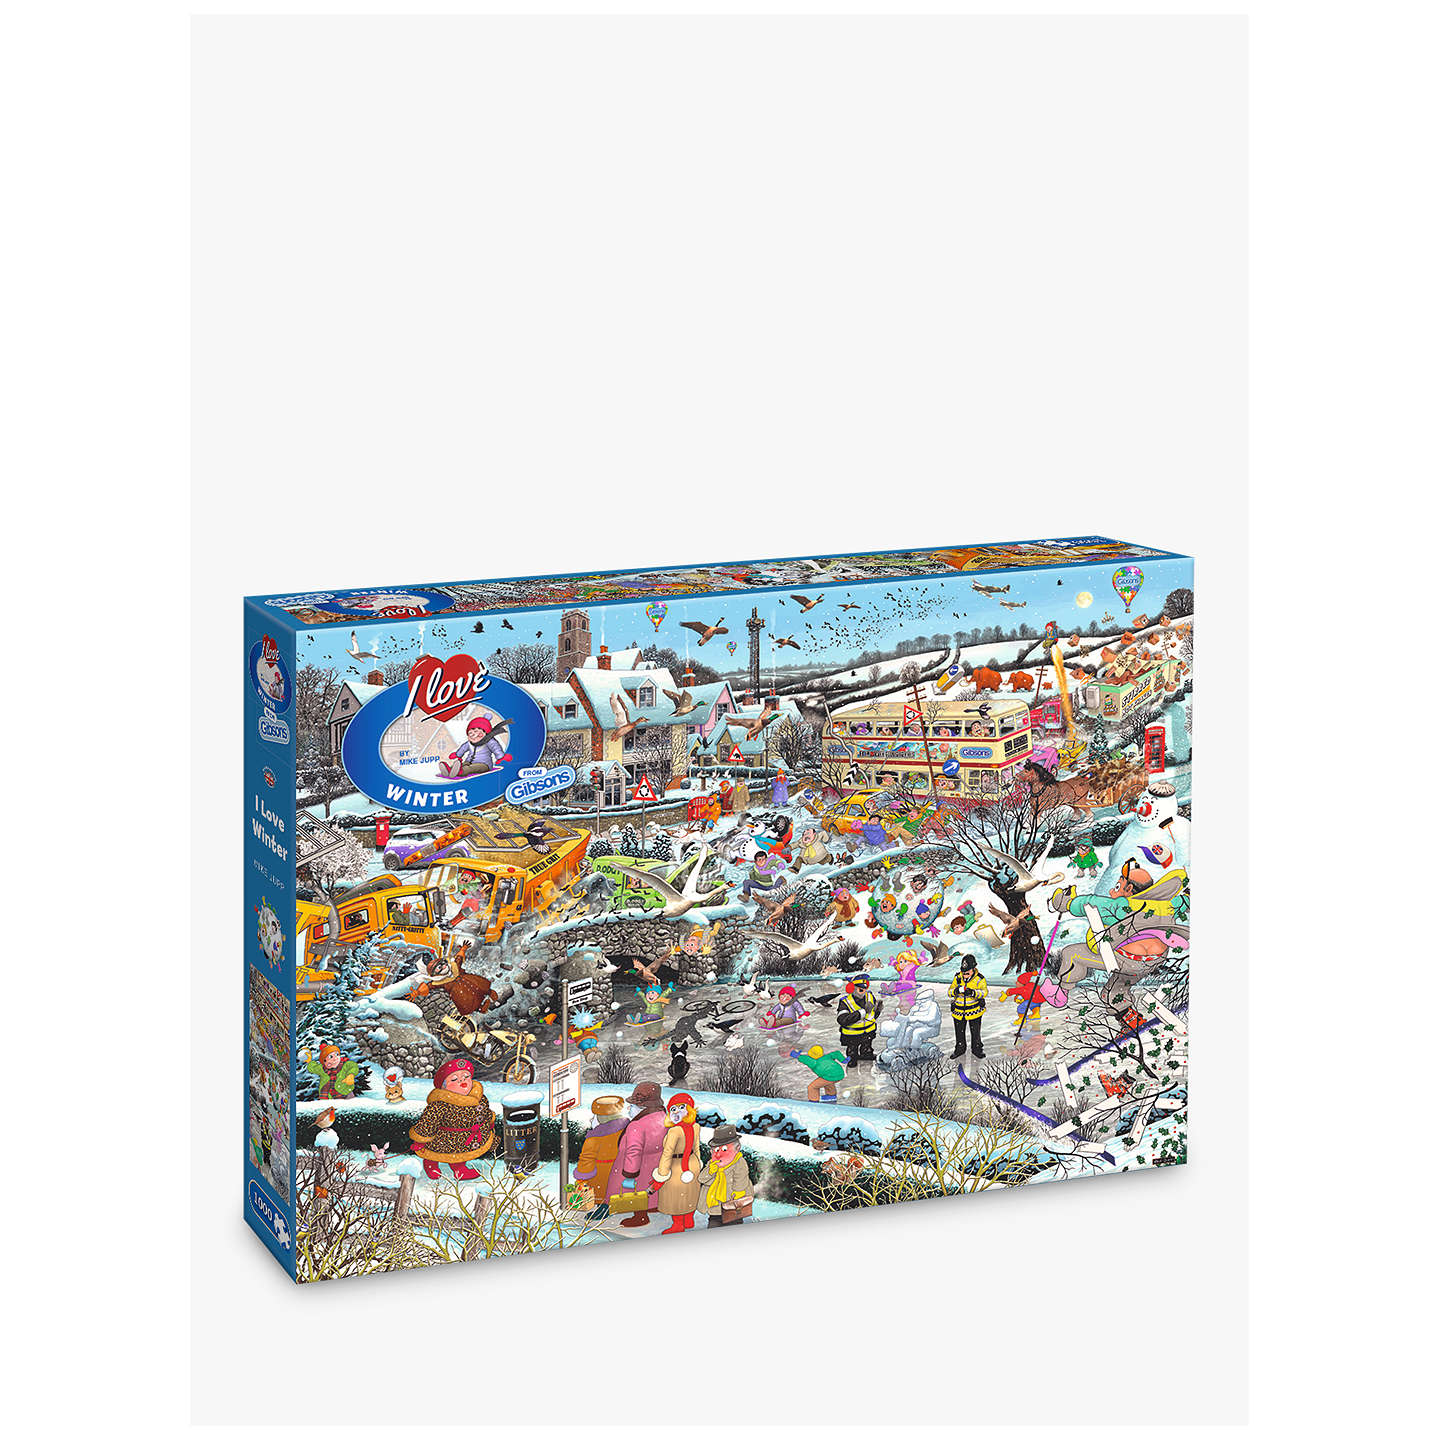 BuyGibsons I Love Winter Jigsaw Puzzle, 1000 Pieces Online at johnlewis.com